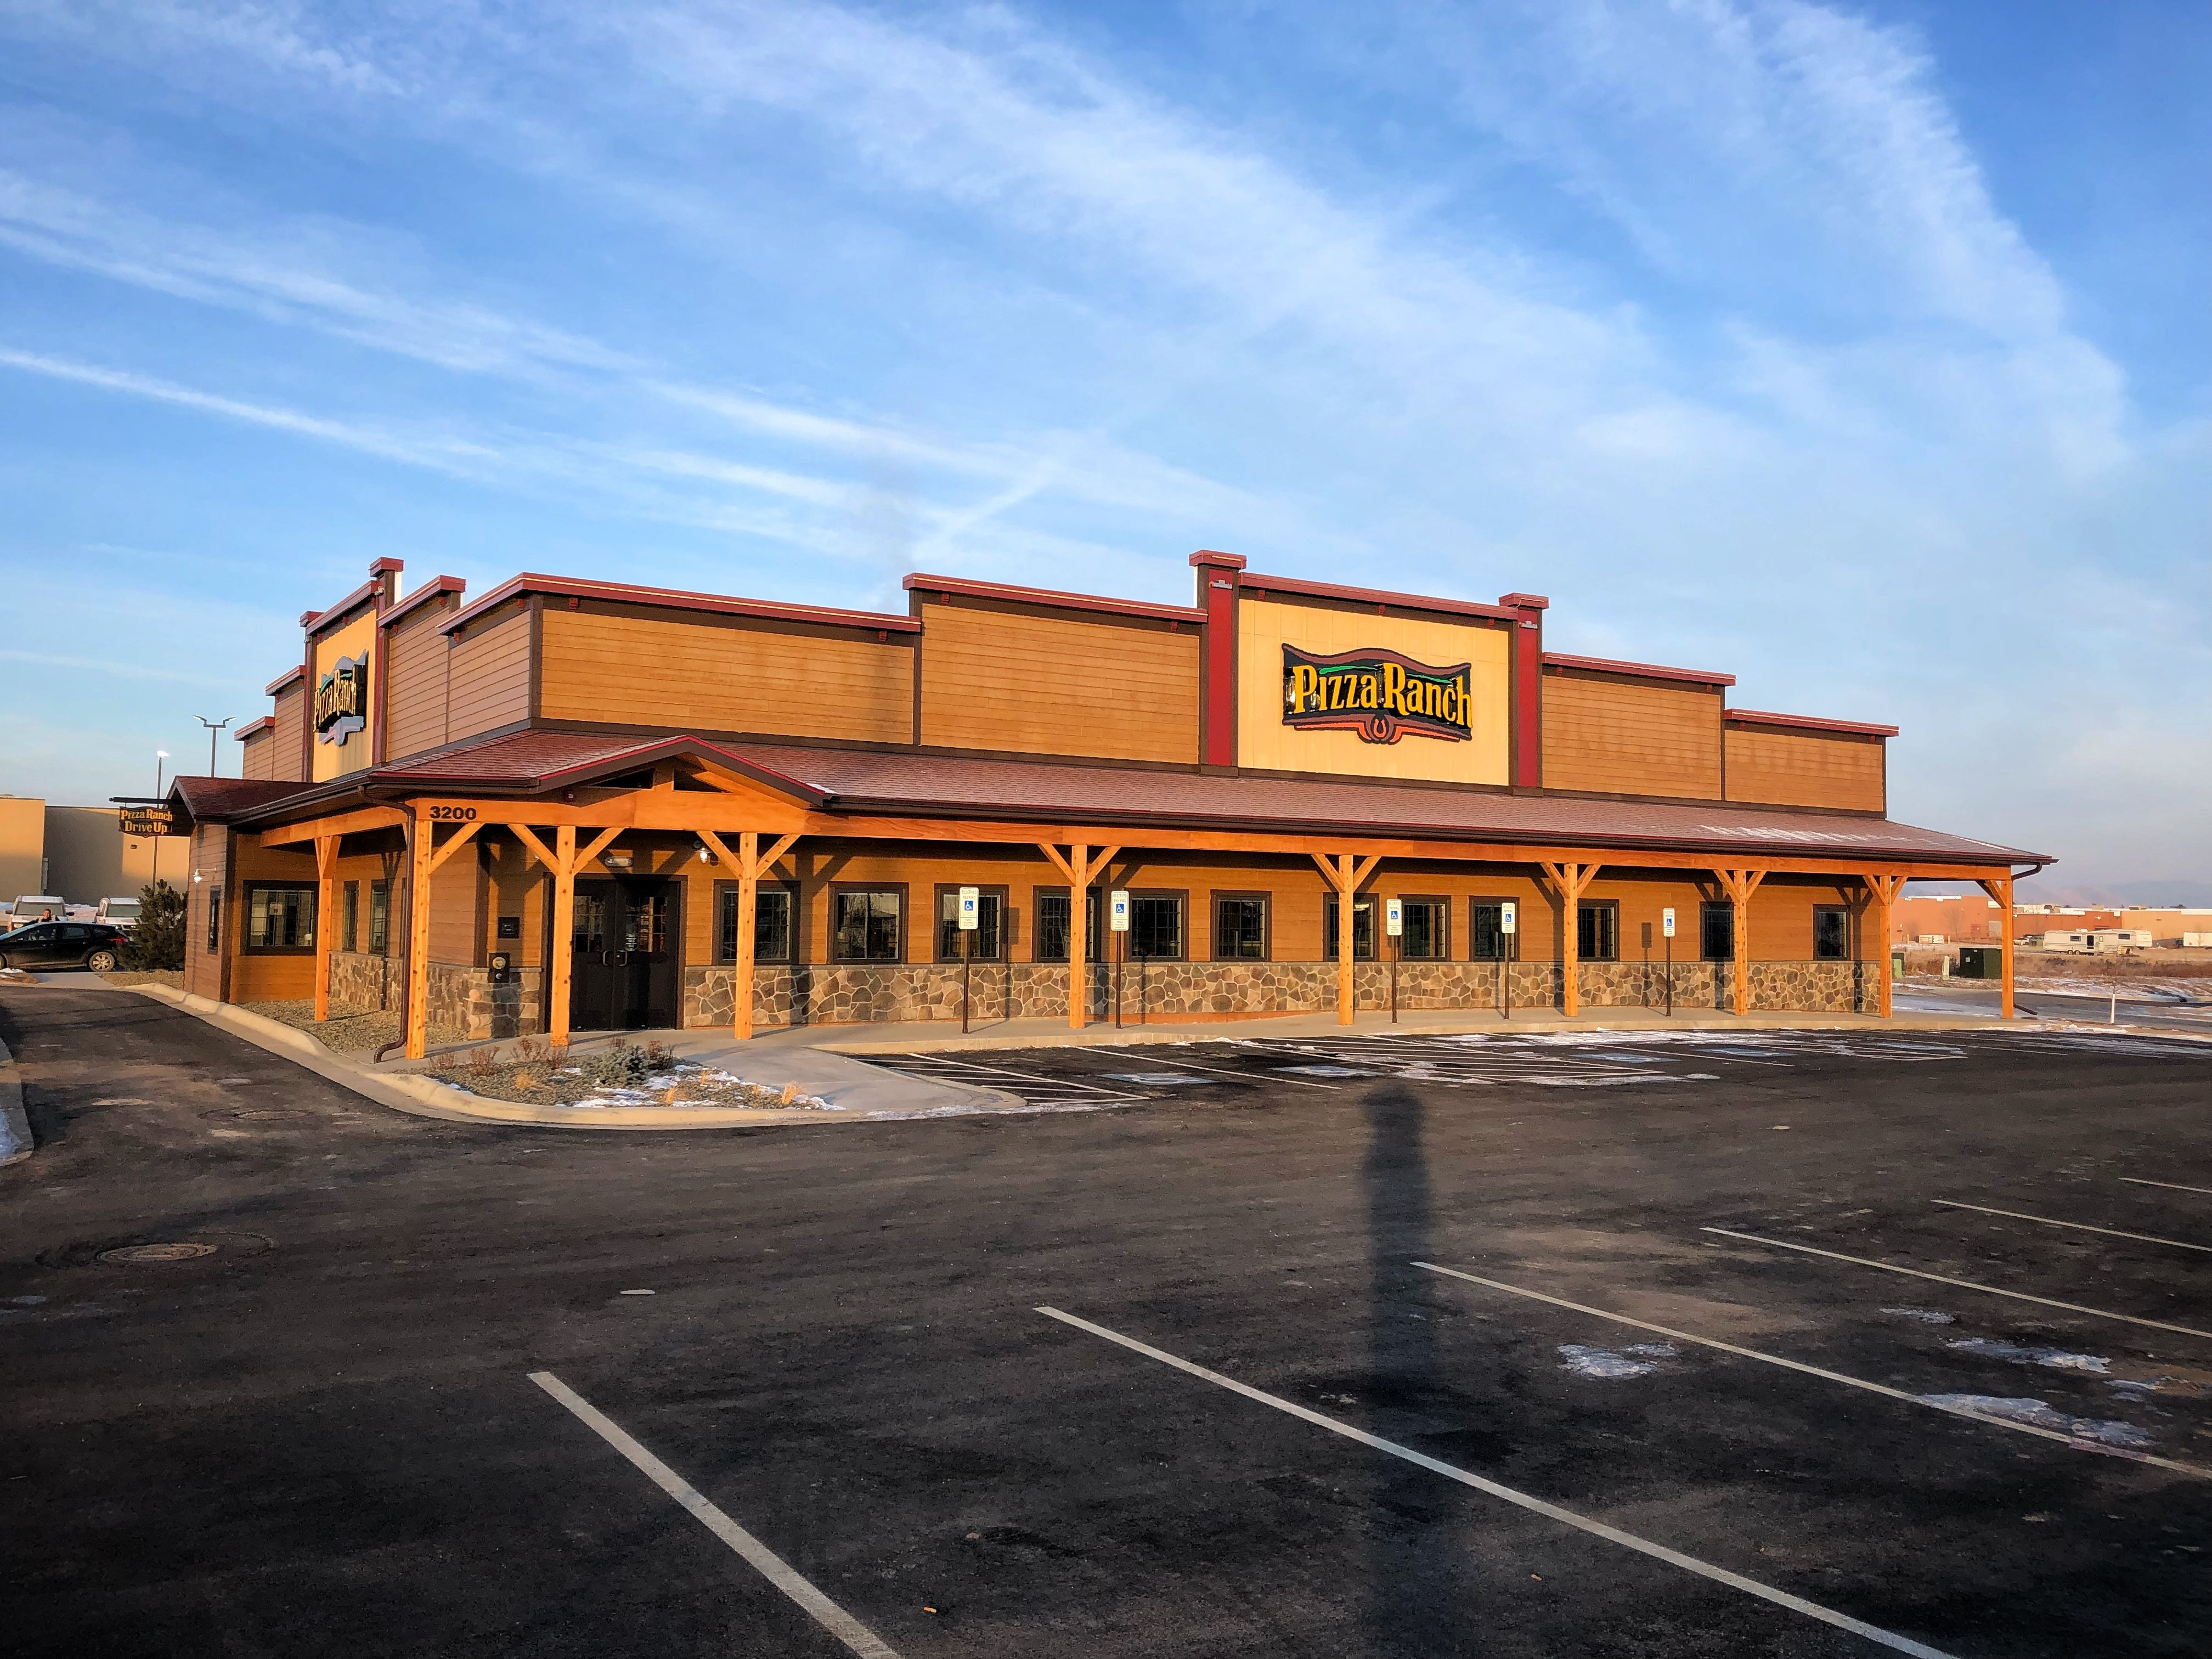 Pizza Ranch image 8